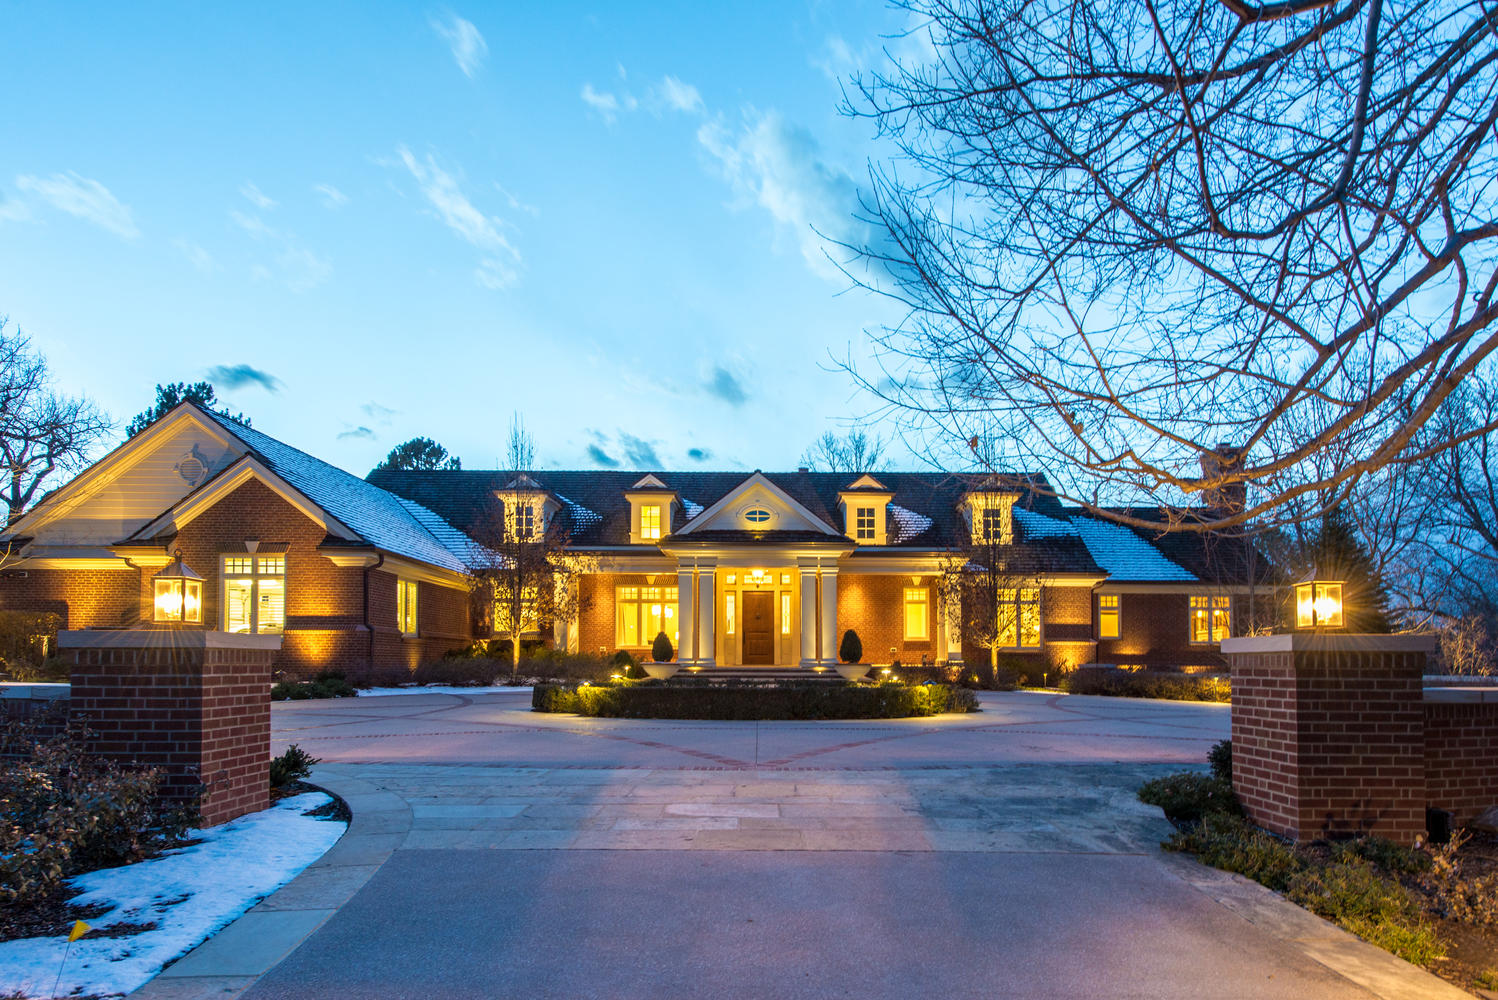 Single Family Home for Active at 14 Cherry Hills Drive Cherry Hills Village, 80113 United States